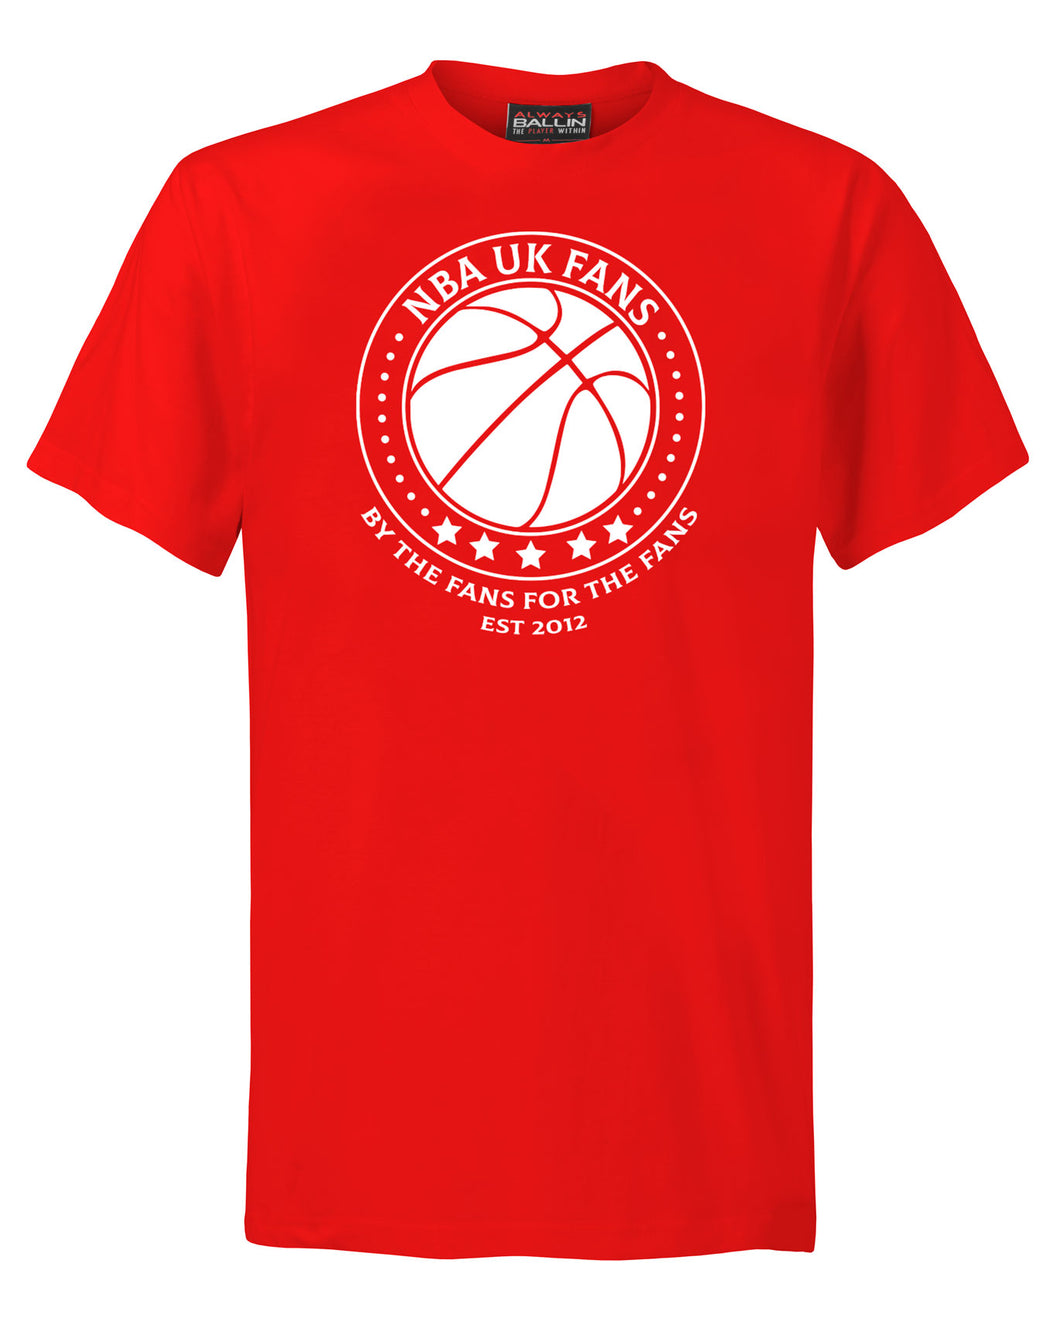 NBA UK Fans Logo Red T-Shirt